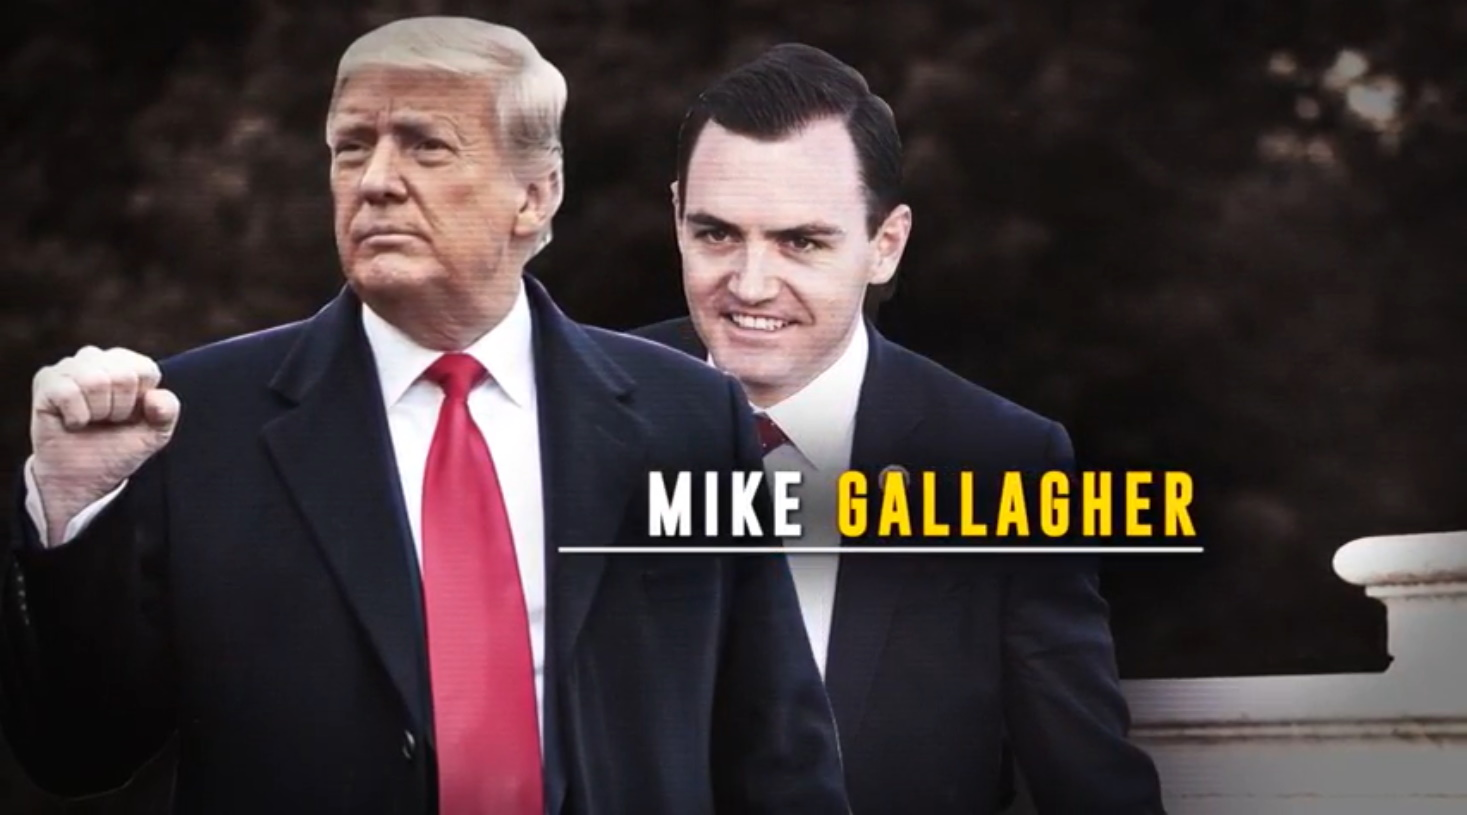 Wisconsin Democrats Release Second Ad This Week Holding Gallagher Accountable for Impeachment Vote